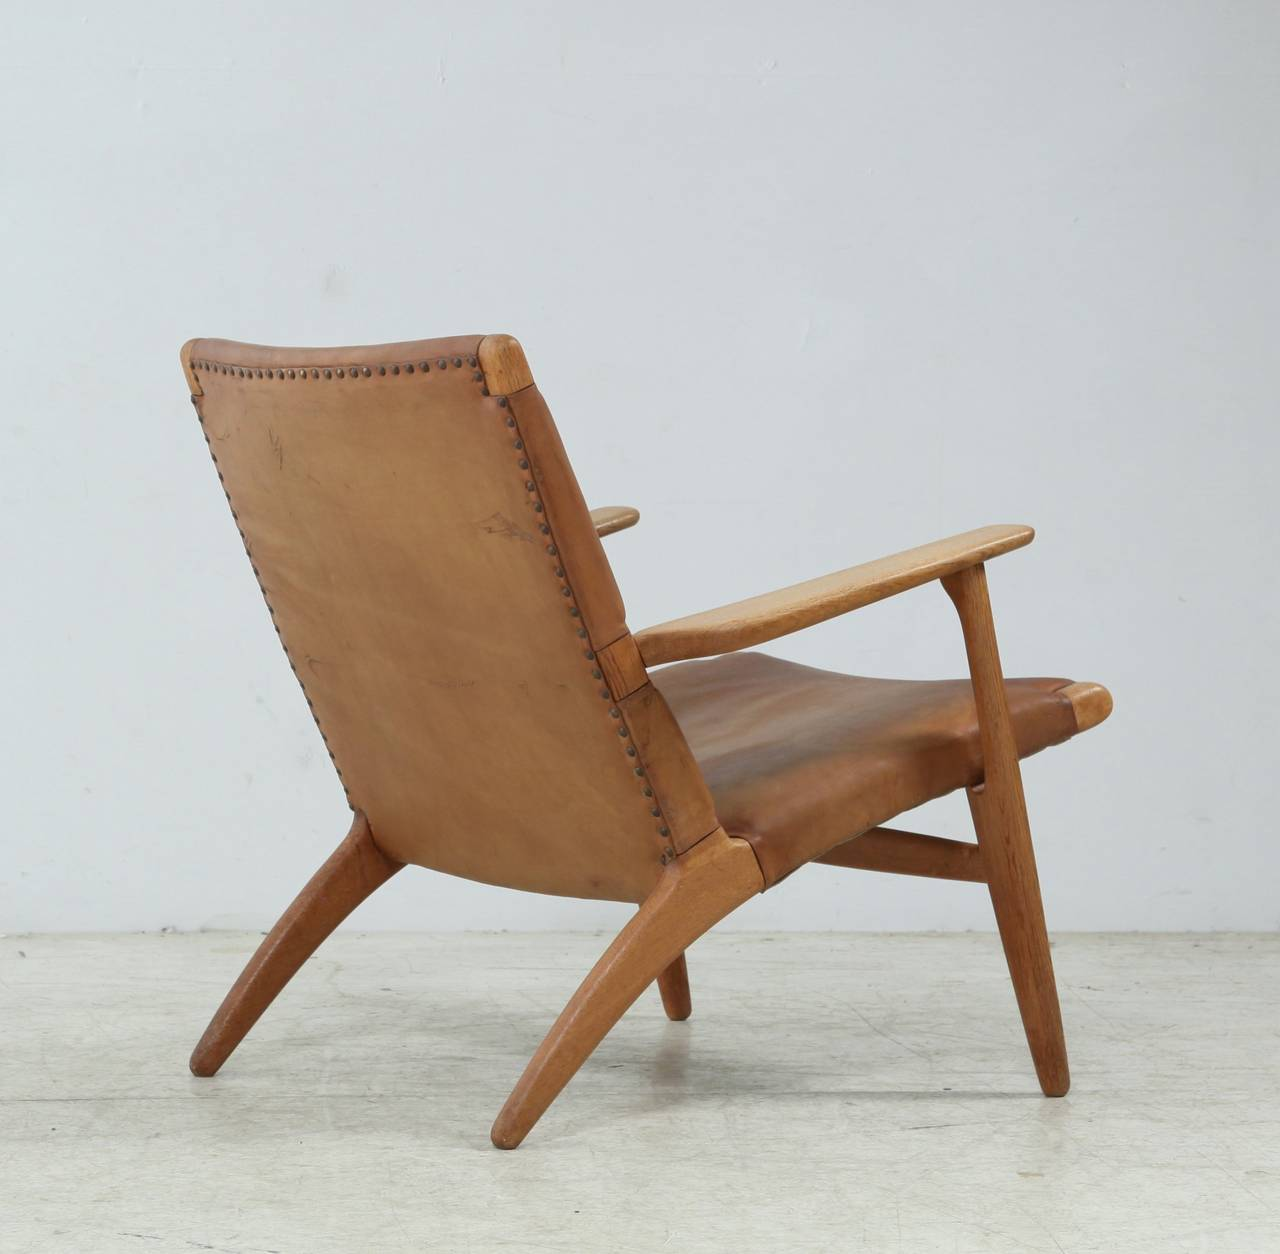 Exceptional Scandinavian Modern Model Ch 25 Hans Wegner Lounge Chair In Leather For Sale